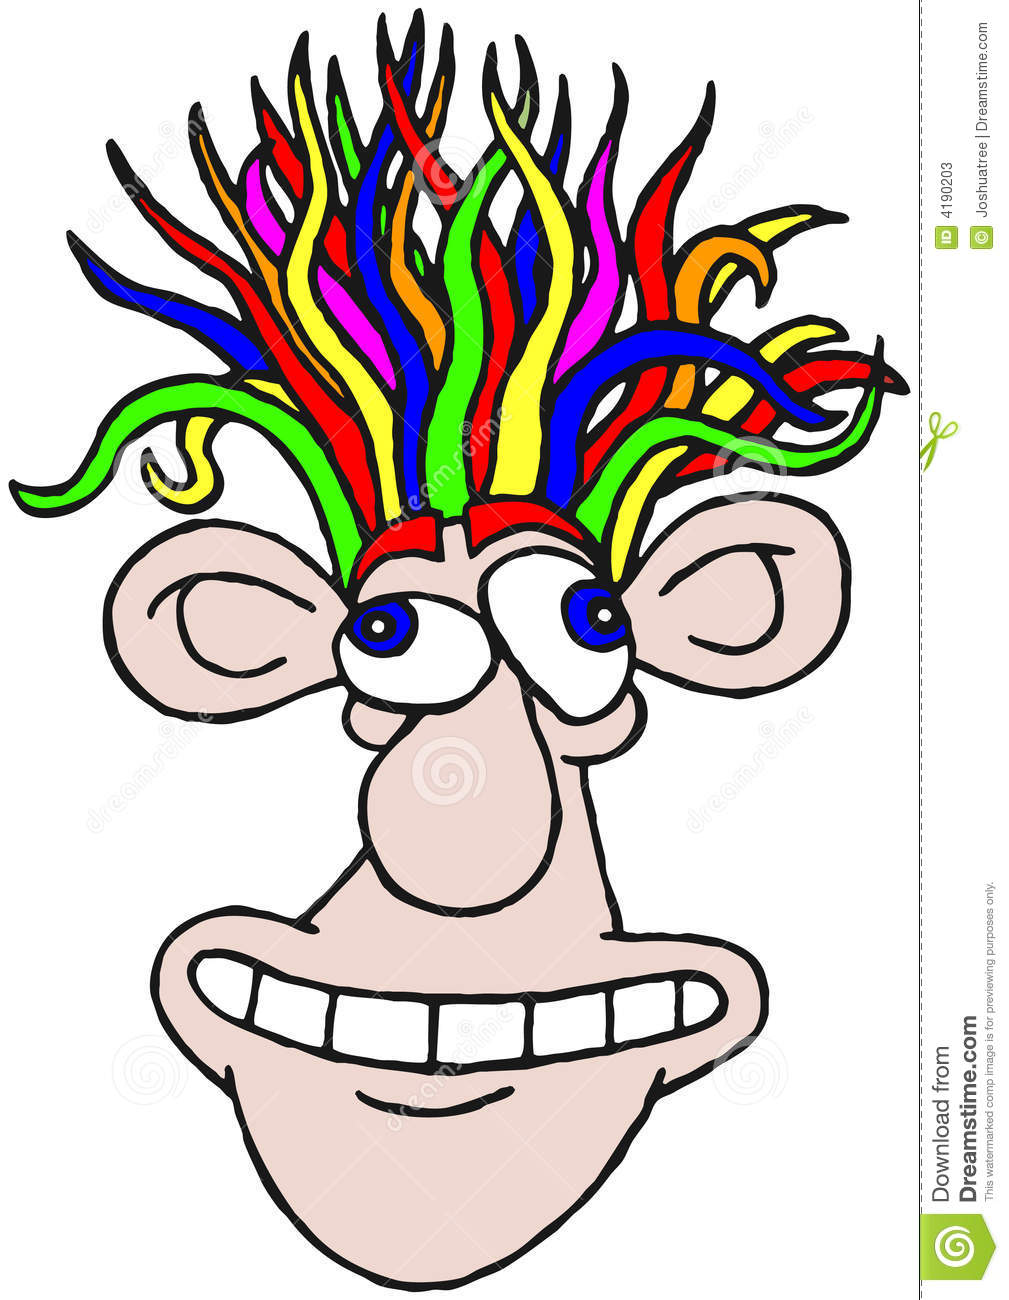 Crazy Hairdo Stock Illustrations 41 Crazy Hairdo Stock Illustrations Vectors Clipart Dreamstime